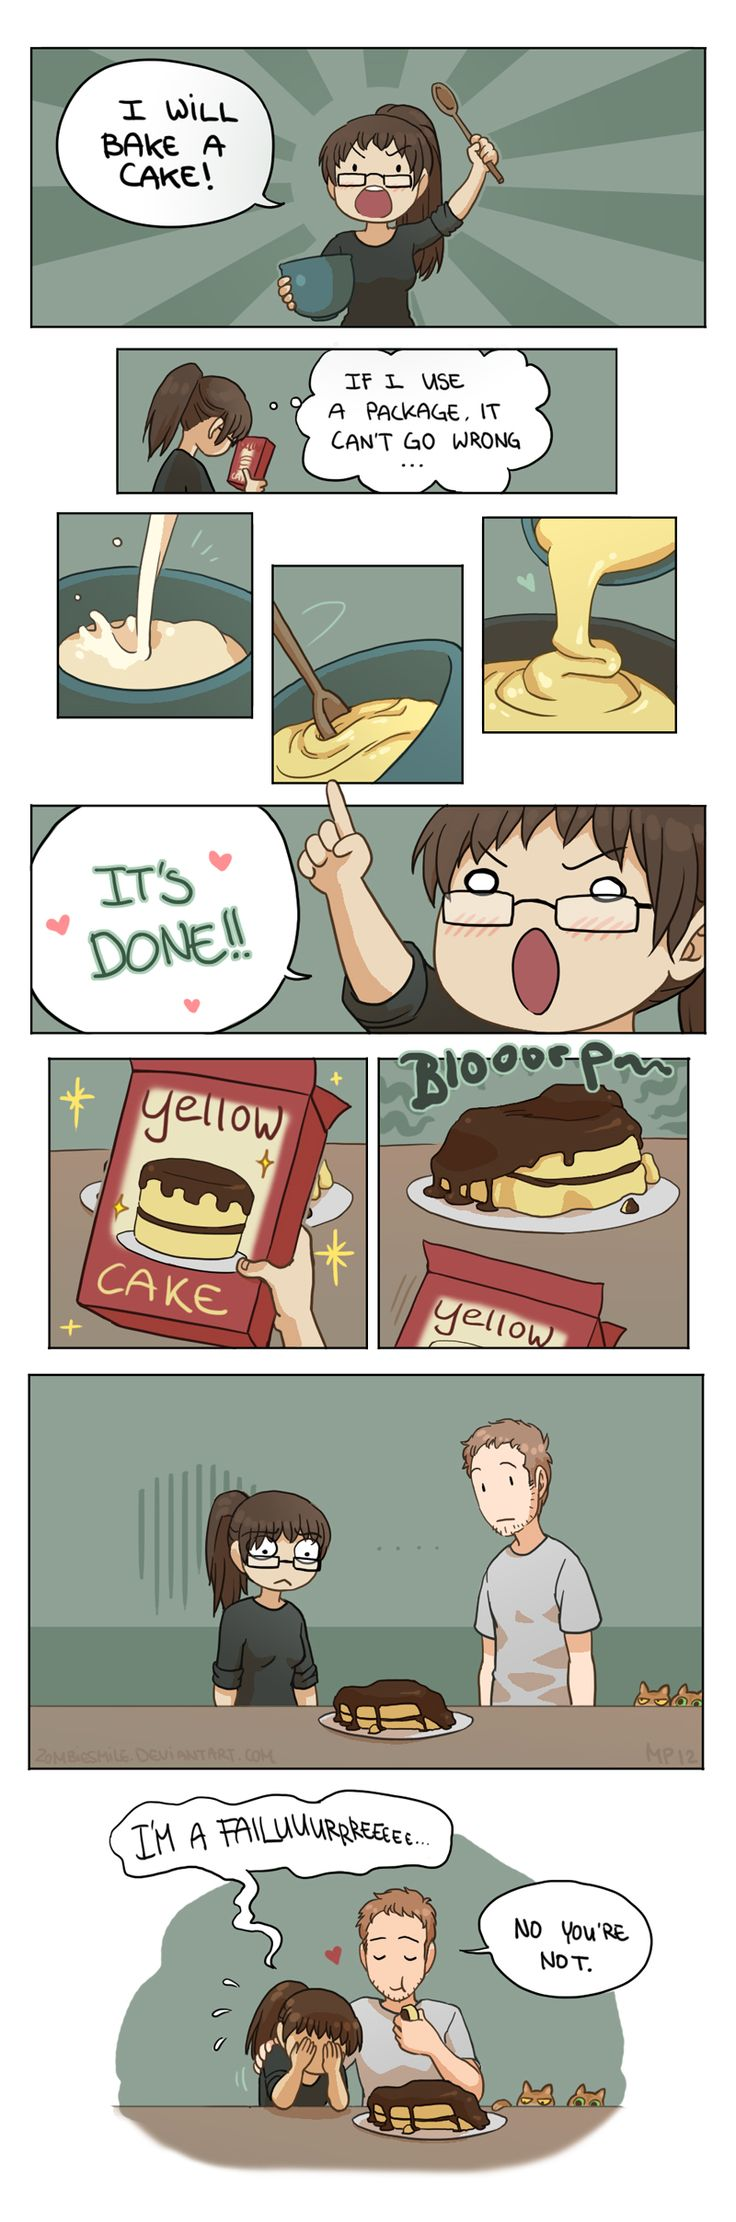 Cake! by Zombiesmile.deviantart.com